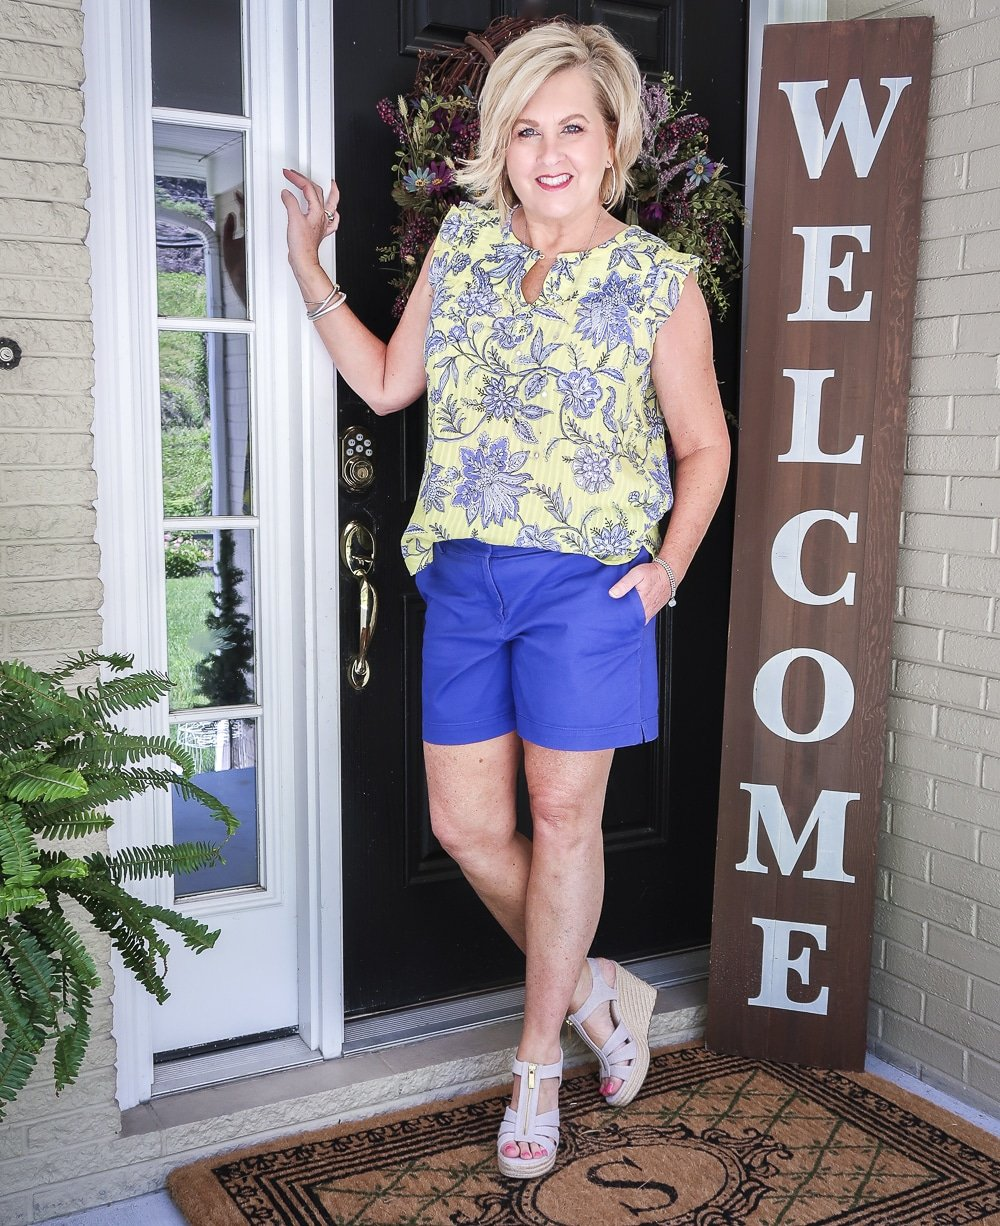 Fashion Blogger 50 Is Not Old wearing a yellow top with a blue floral design, azure blue shorts, and platform espadrille wedge shoes